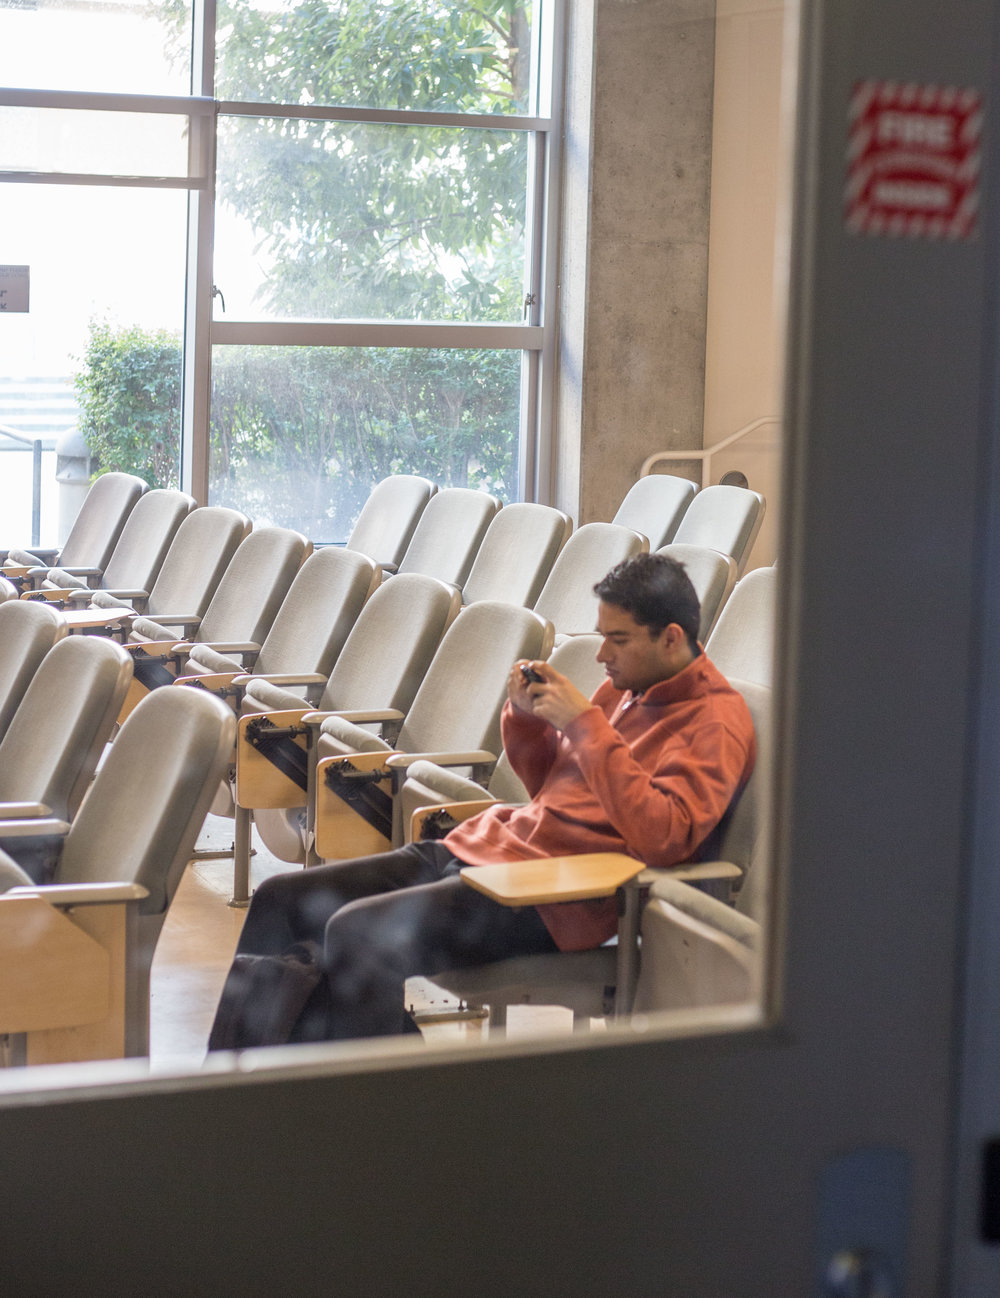 "Santa Monica College student, refused to give name, sits alone in a classroom after SMC students were notified via email and phone call that all classes on Wednesday, December 6th were canceled due to the close proximity to the Skirball fire. This took place on SMC's Main Campus Humanities and Social Sciences building on Wednesday, December 6th 2017 in Santa Monica, Calif. The email stated that the ""fire is affecting the air quality and the road conditions in and around SMC area"" and was sent out at 8:49 am. (Photo by: Thane Fernandes)"